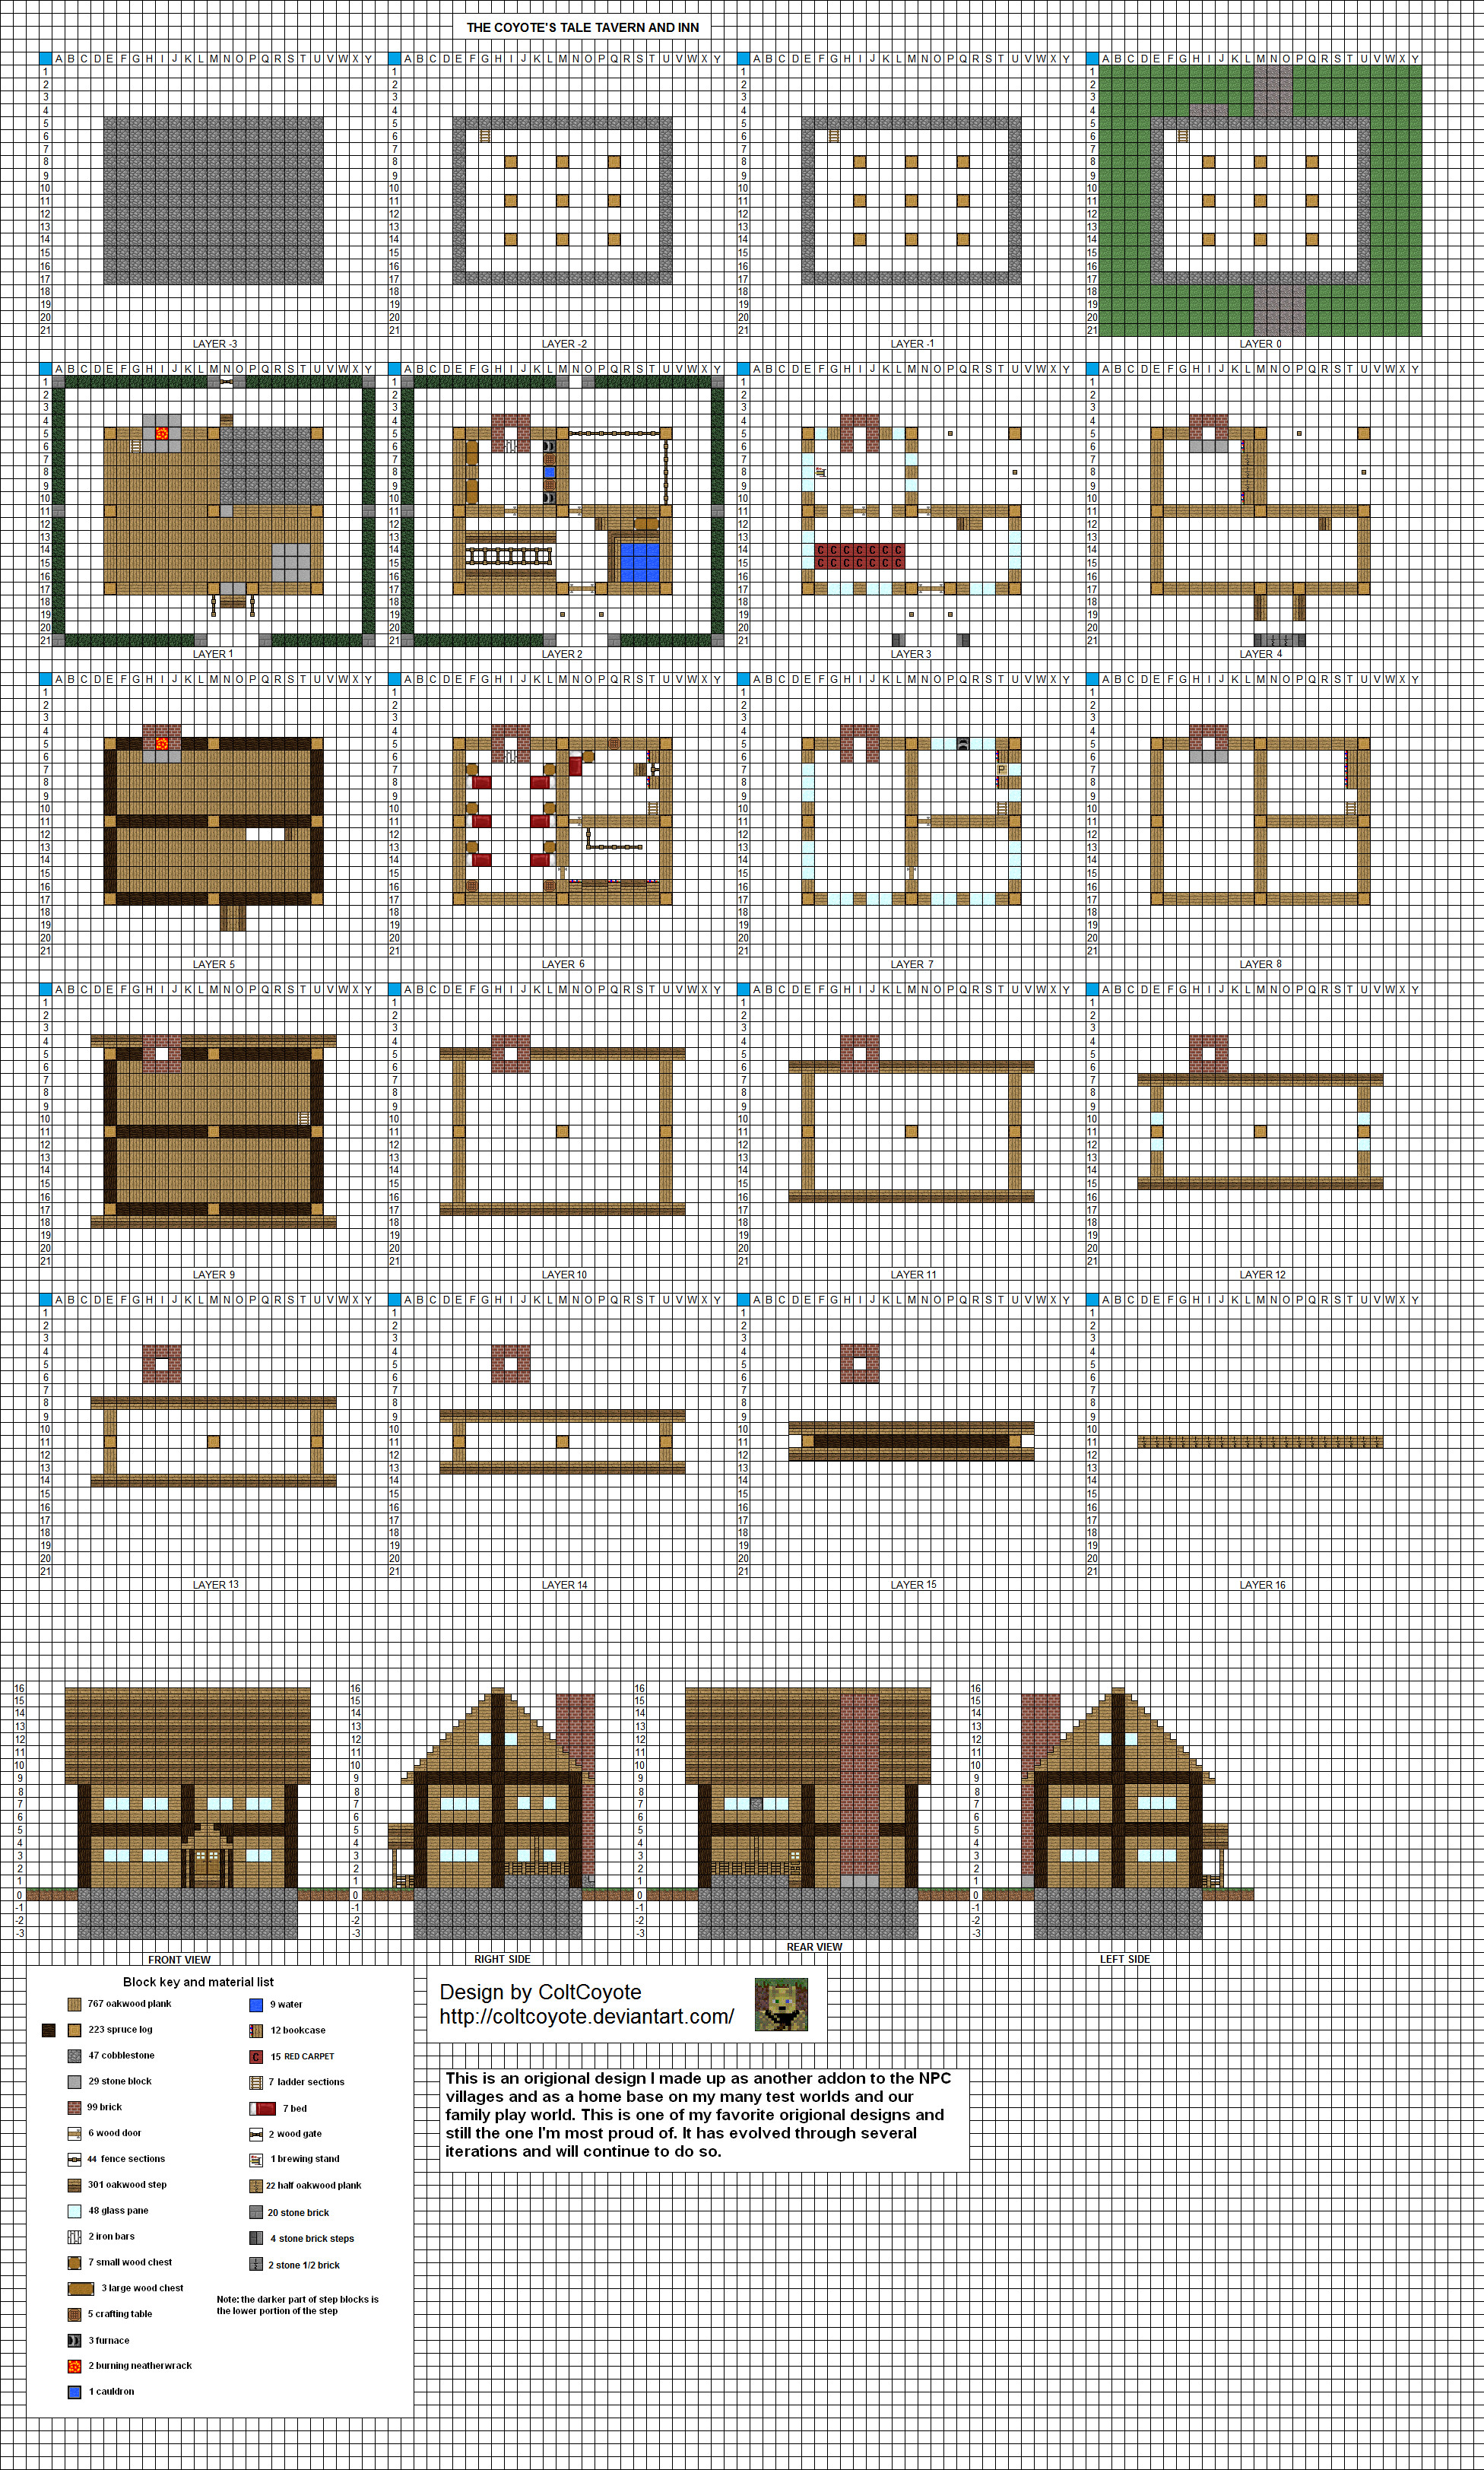 Small inn mk3 by coltcoyote on deviantart for Home blueprint maker